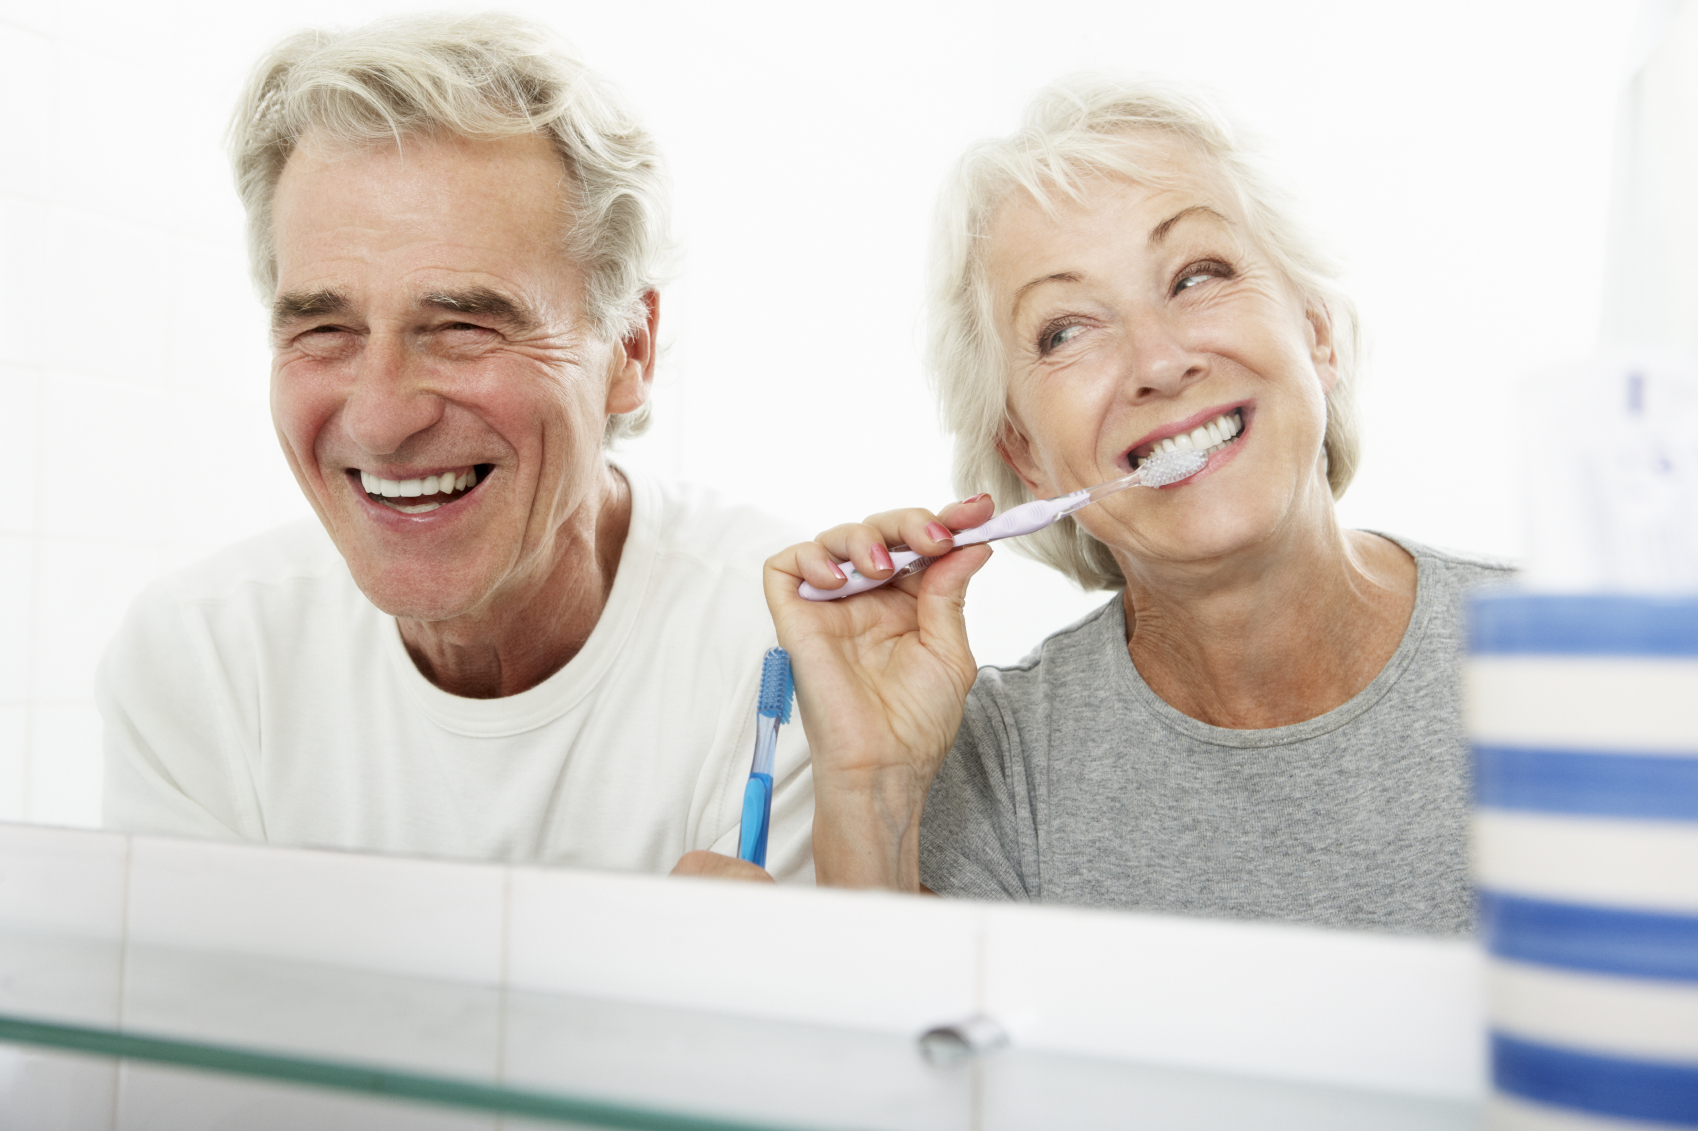 Aurora Dental Implants